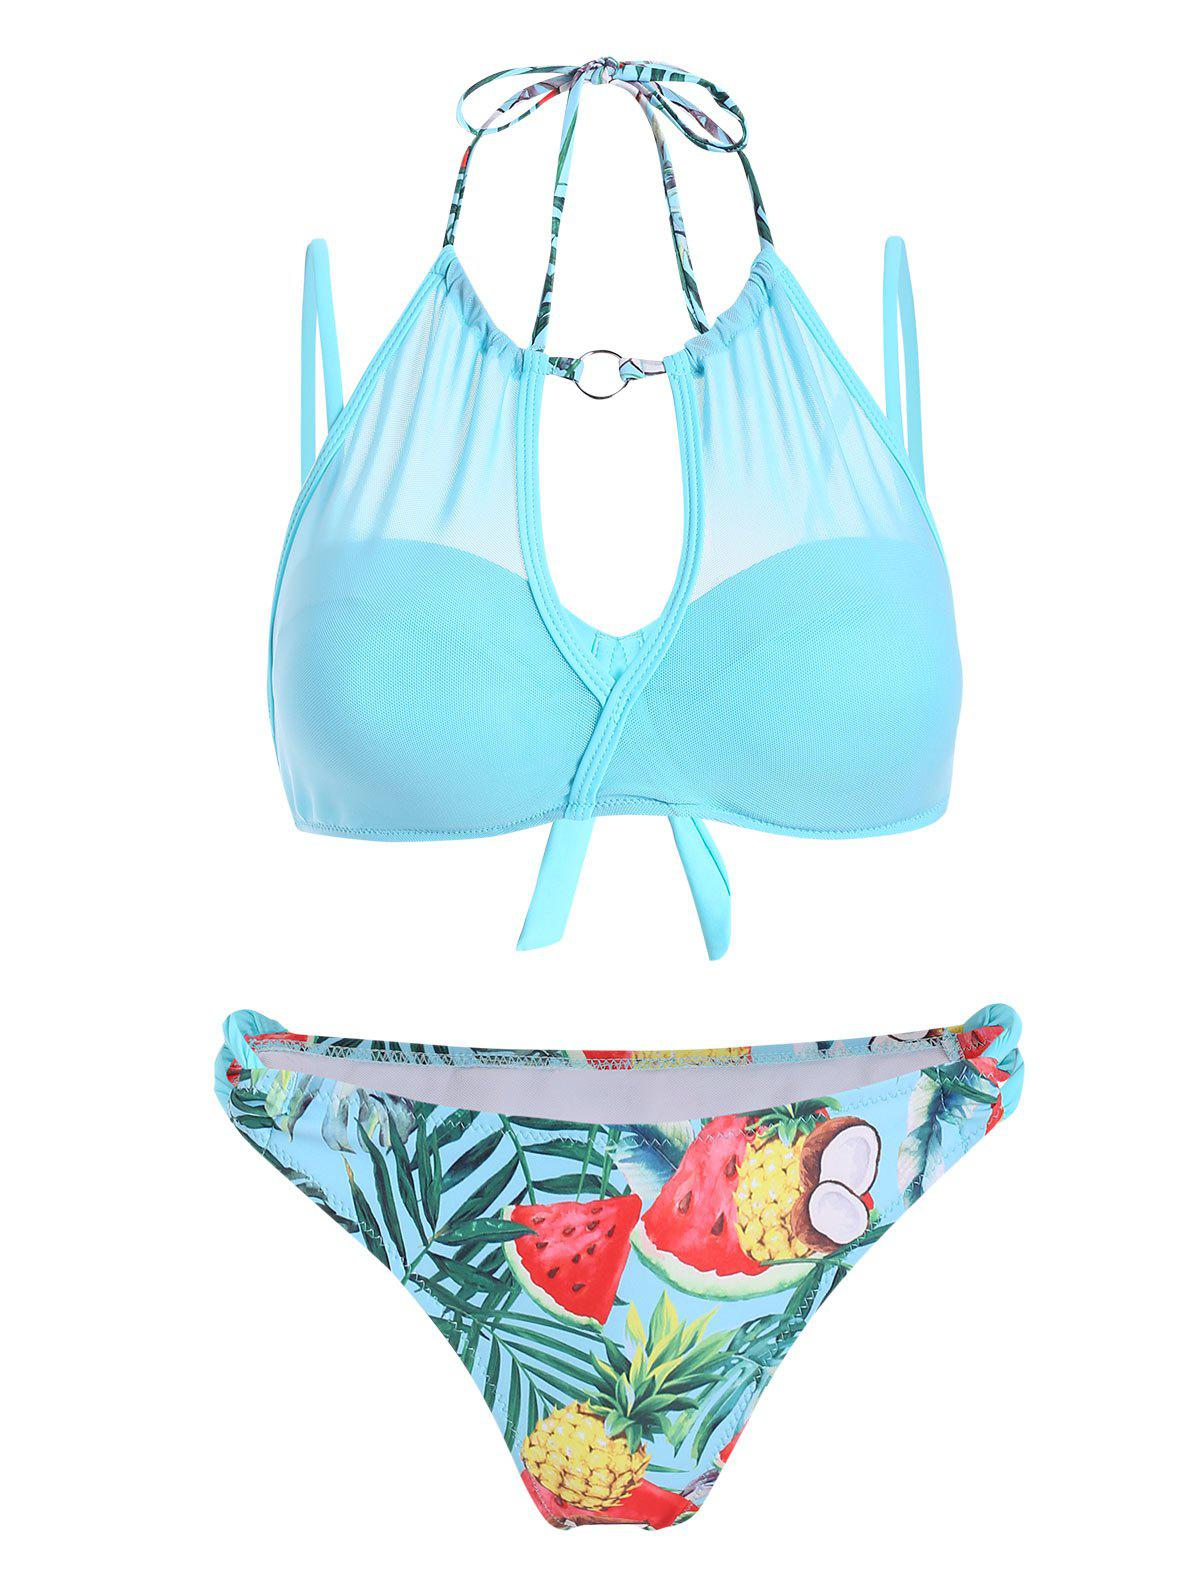 Fruit Tropical Feuille superposition en maille Push Up Bikini maillot de bain - Céleste L